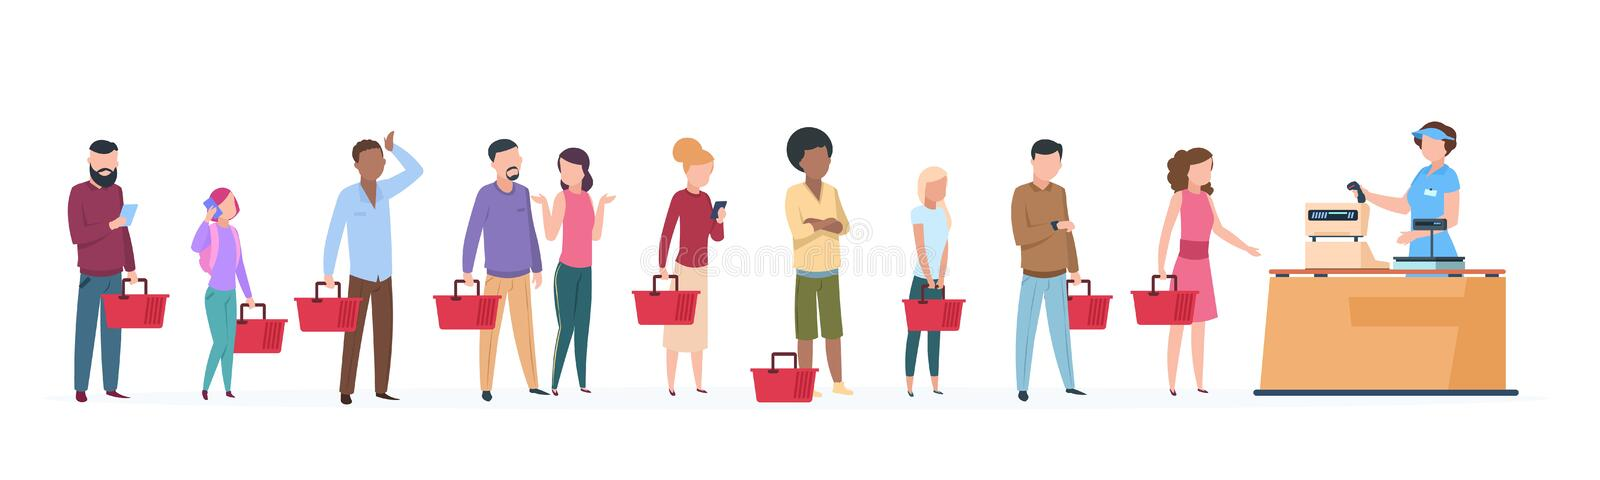 People queue. Man and woman standing waiting in long line row. Crowded queue in grocery store concept. People queue. Man and woman standing waiting in long line royalty free illustration